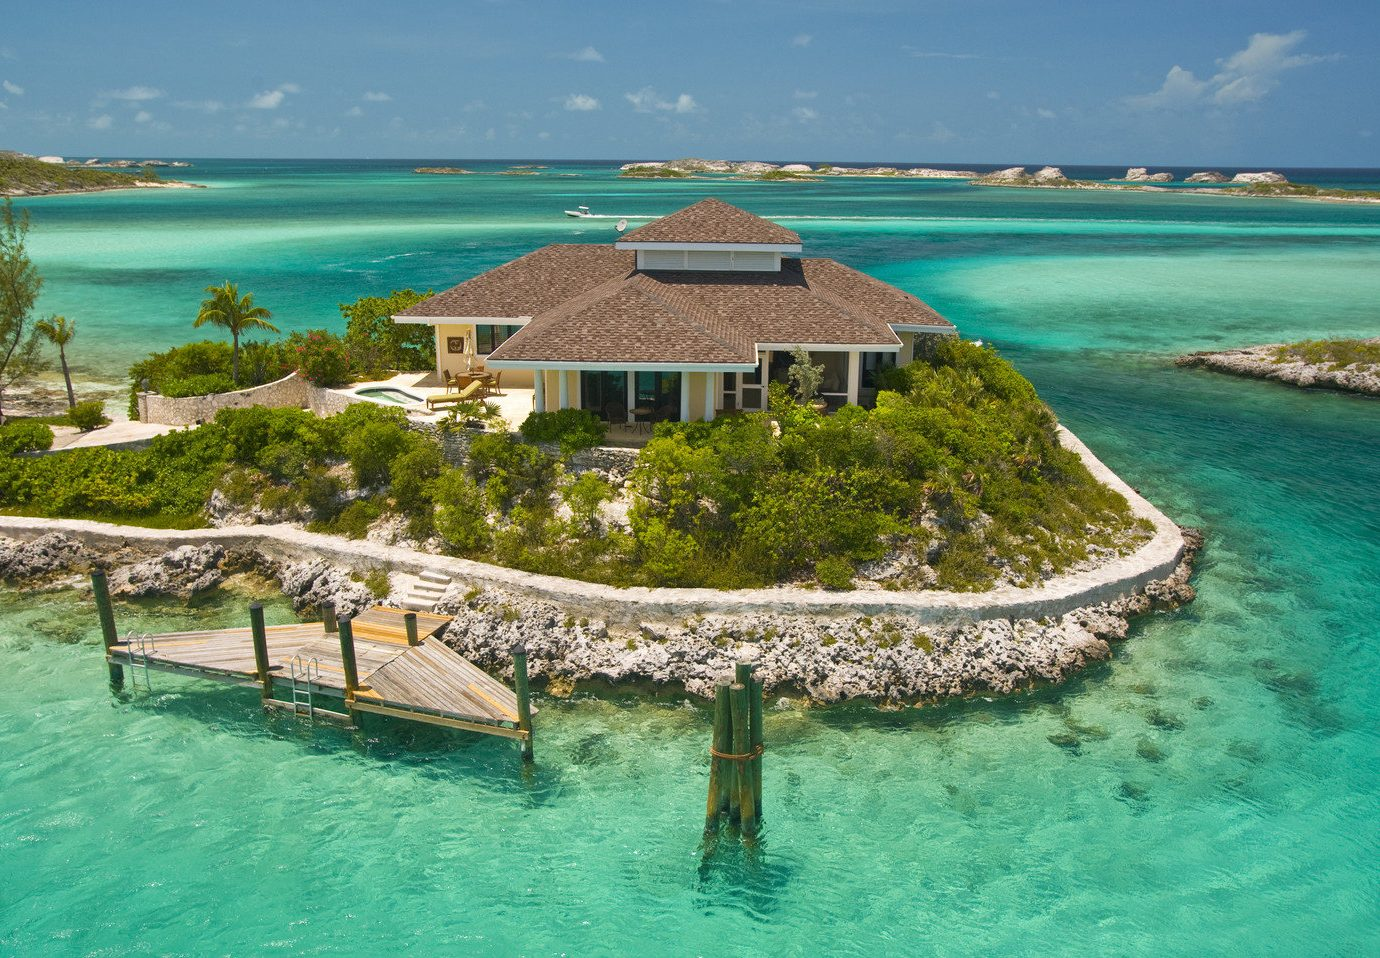 Aerial view of Fowl Cay Resort